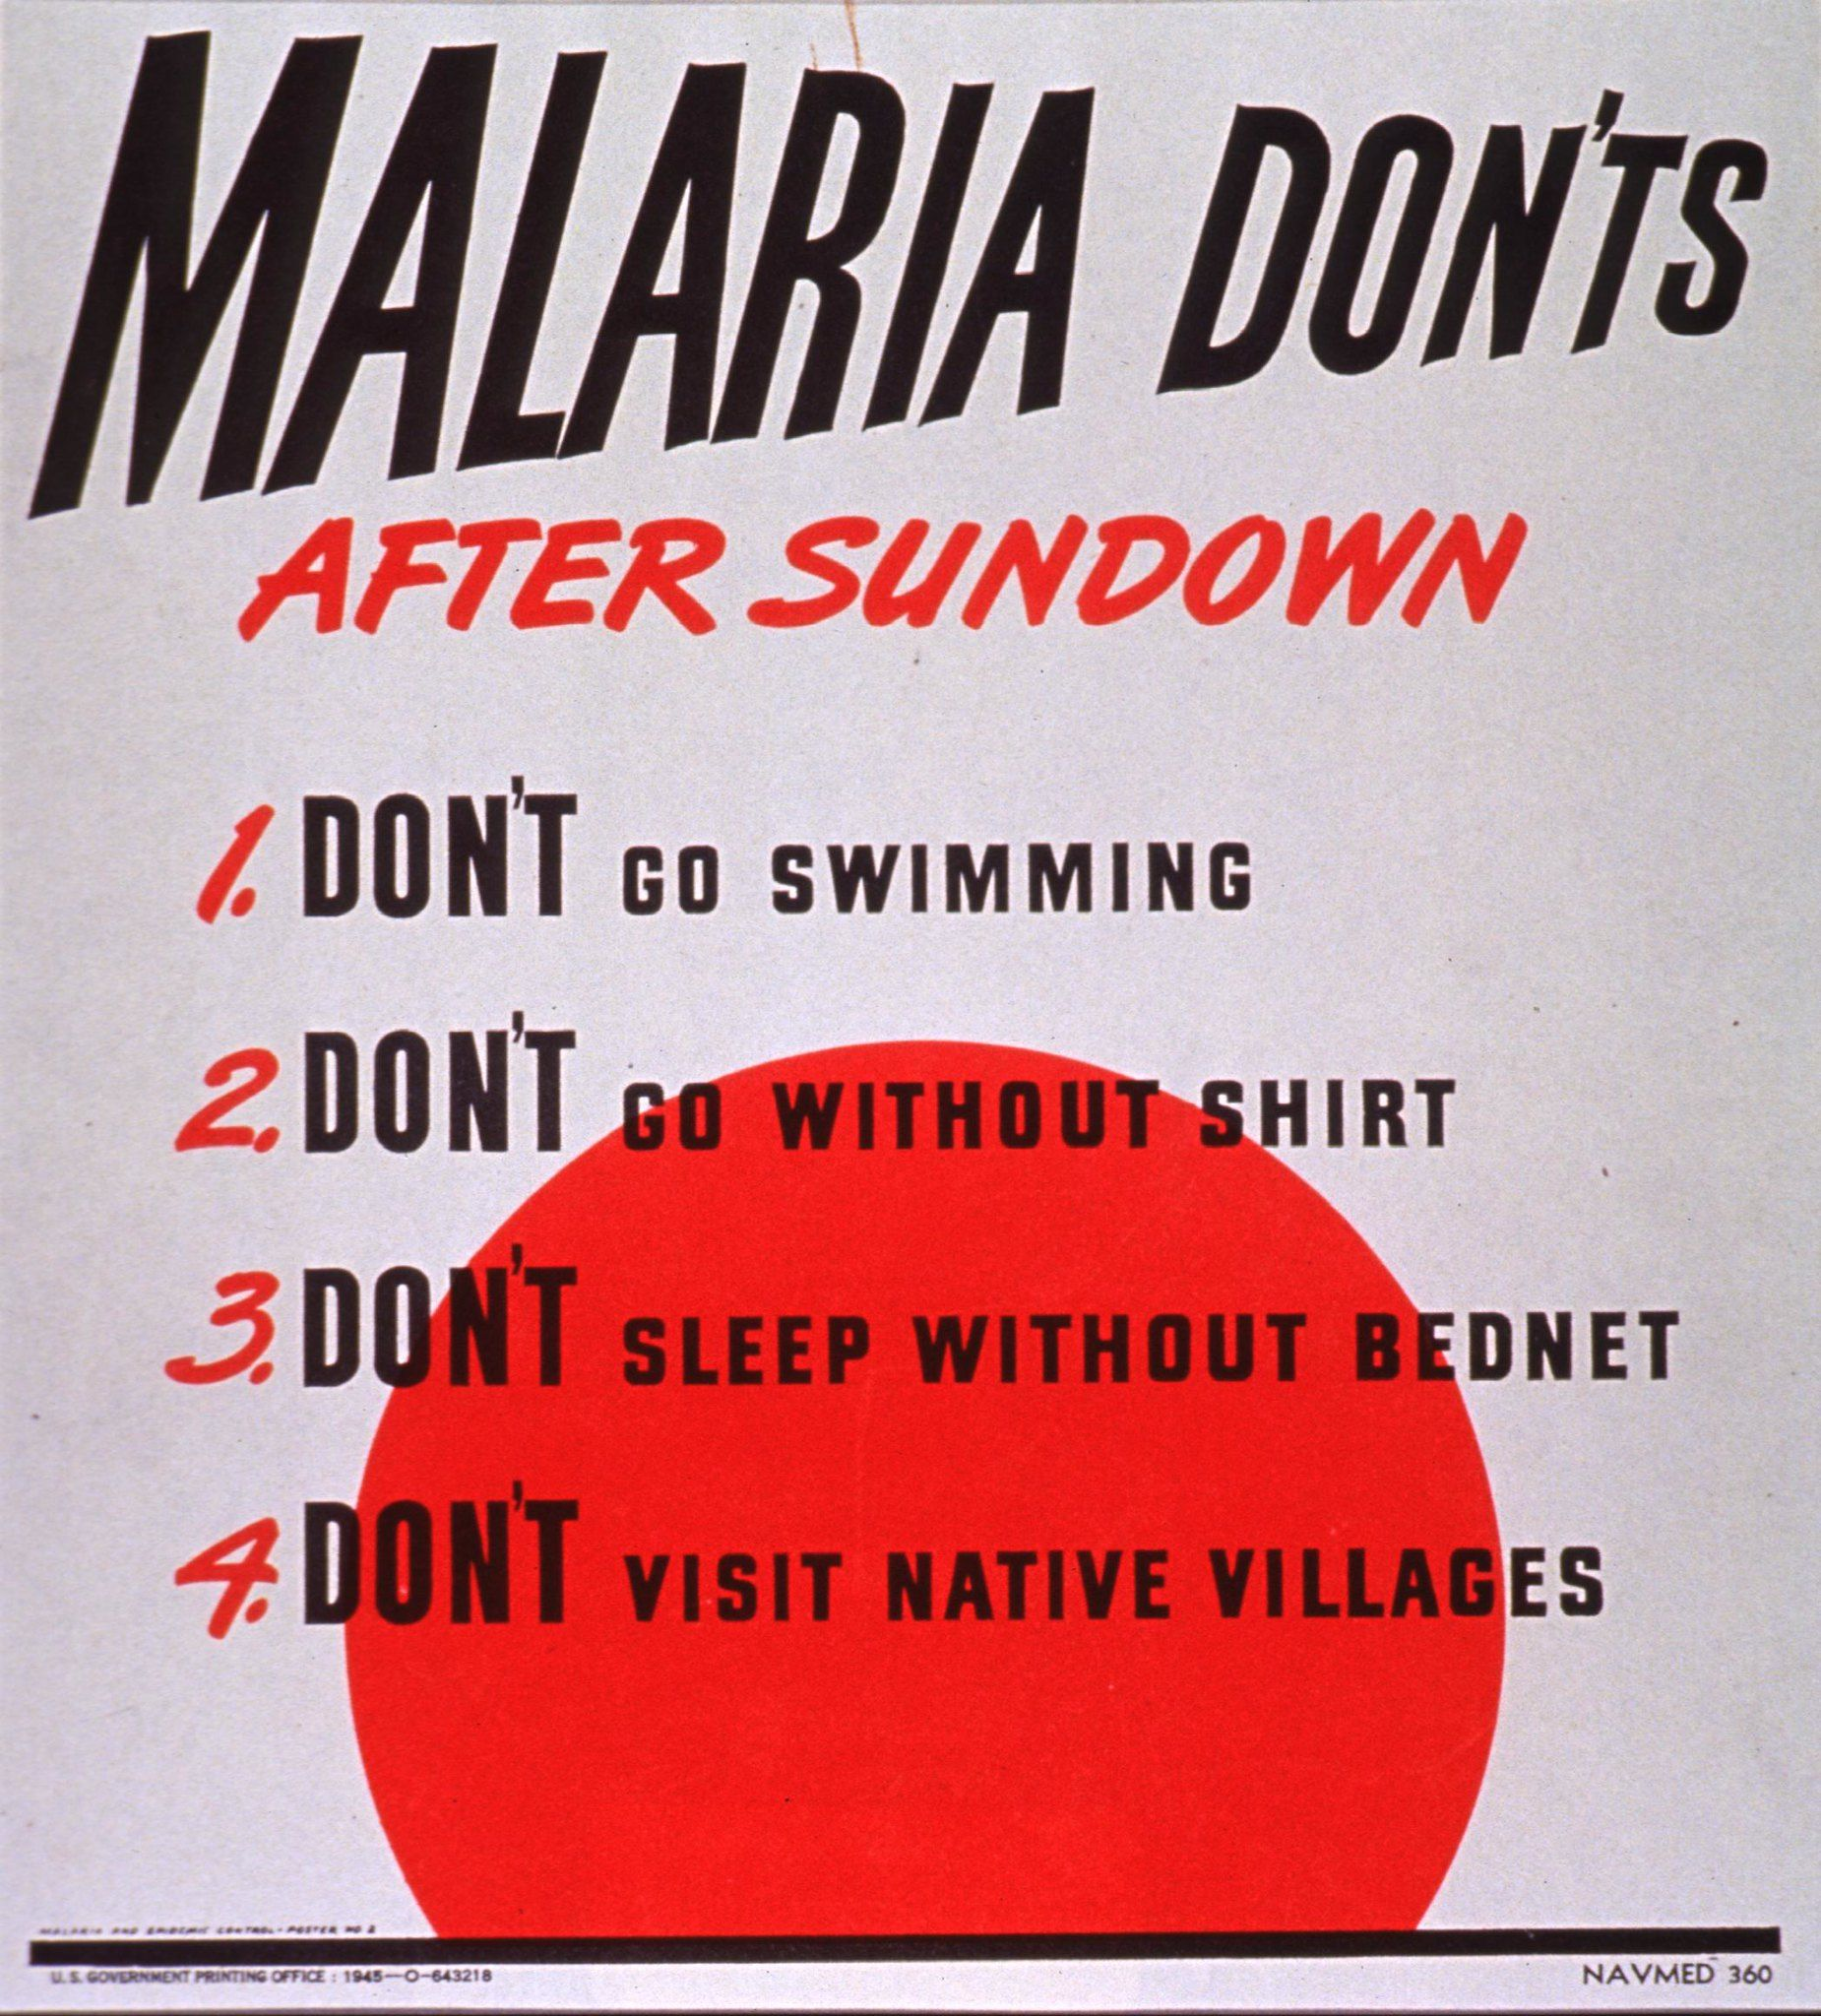 Malaria Donts SimpleMed